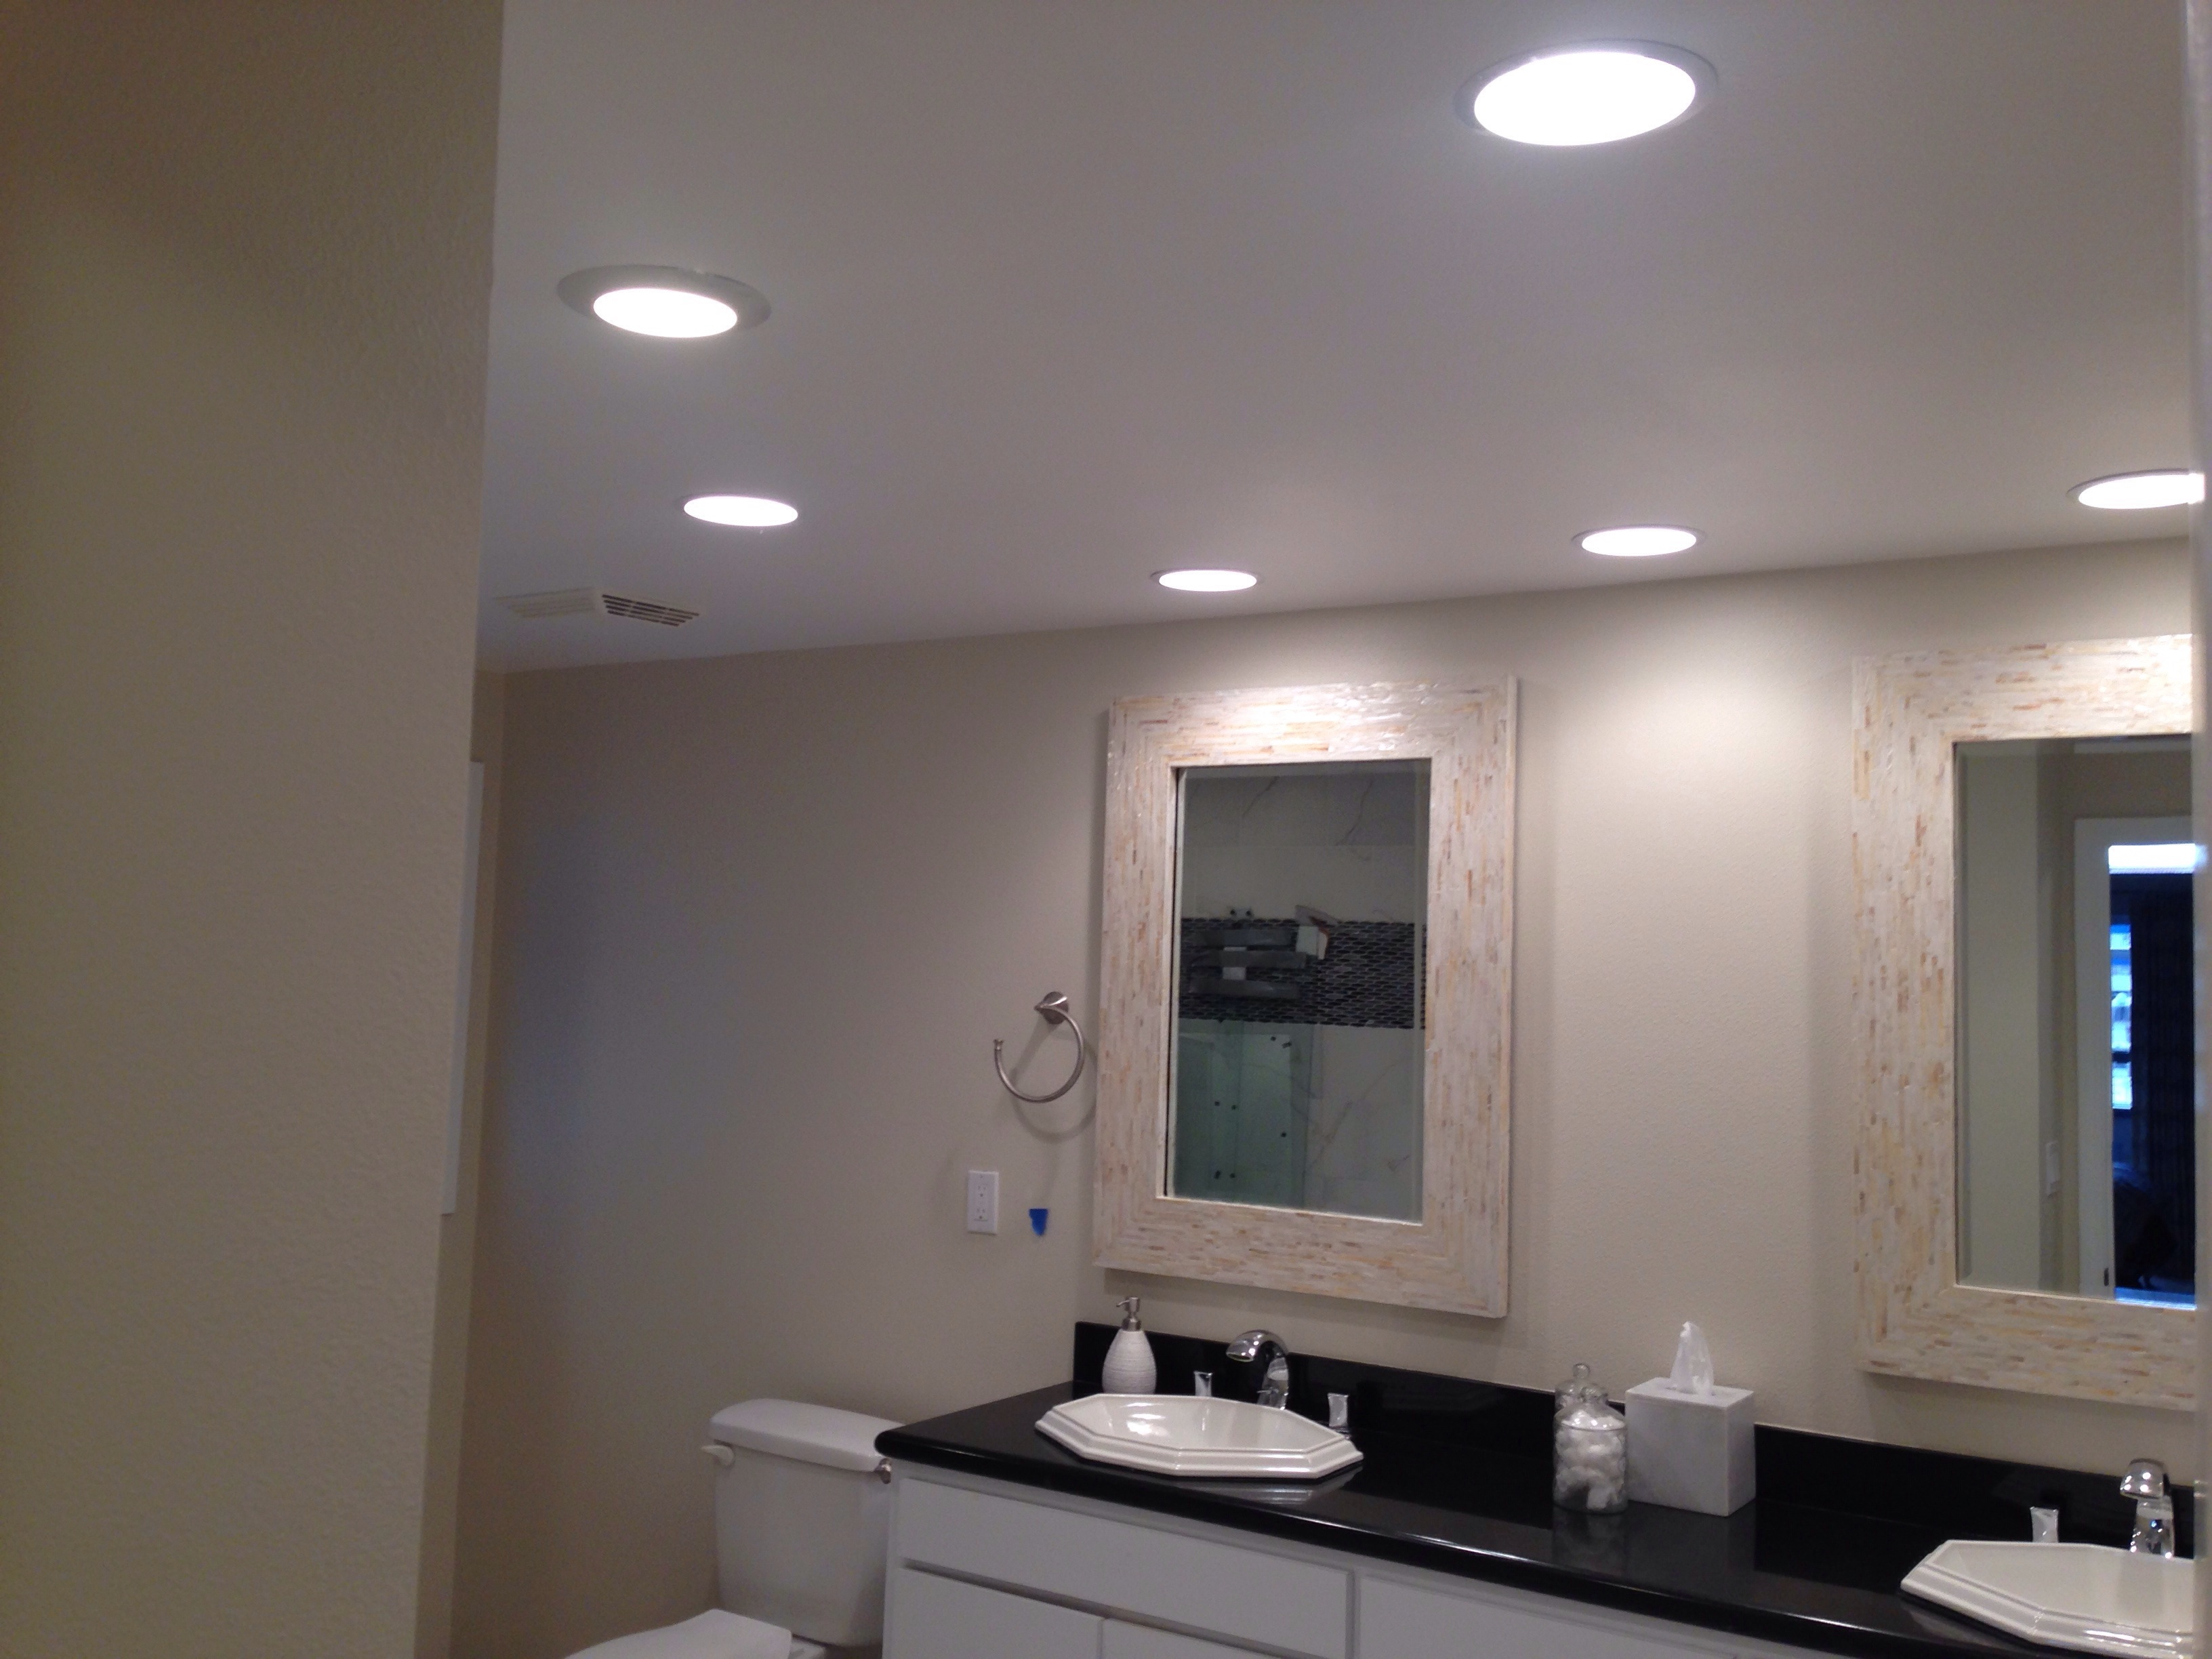 Bathroom Light Fixtures 4 Lights